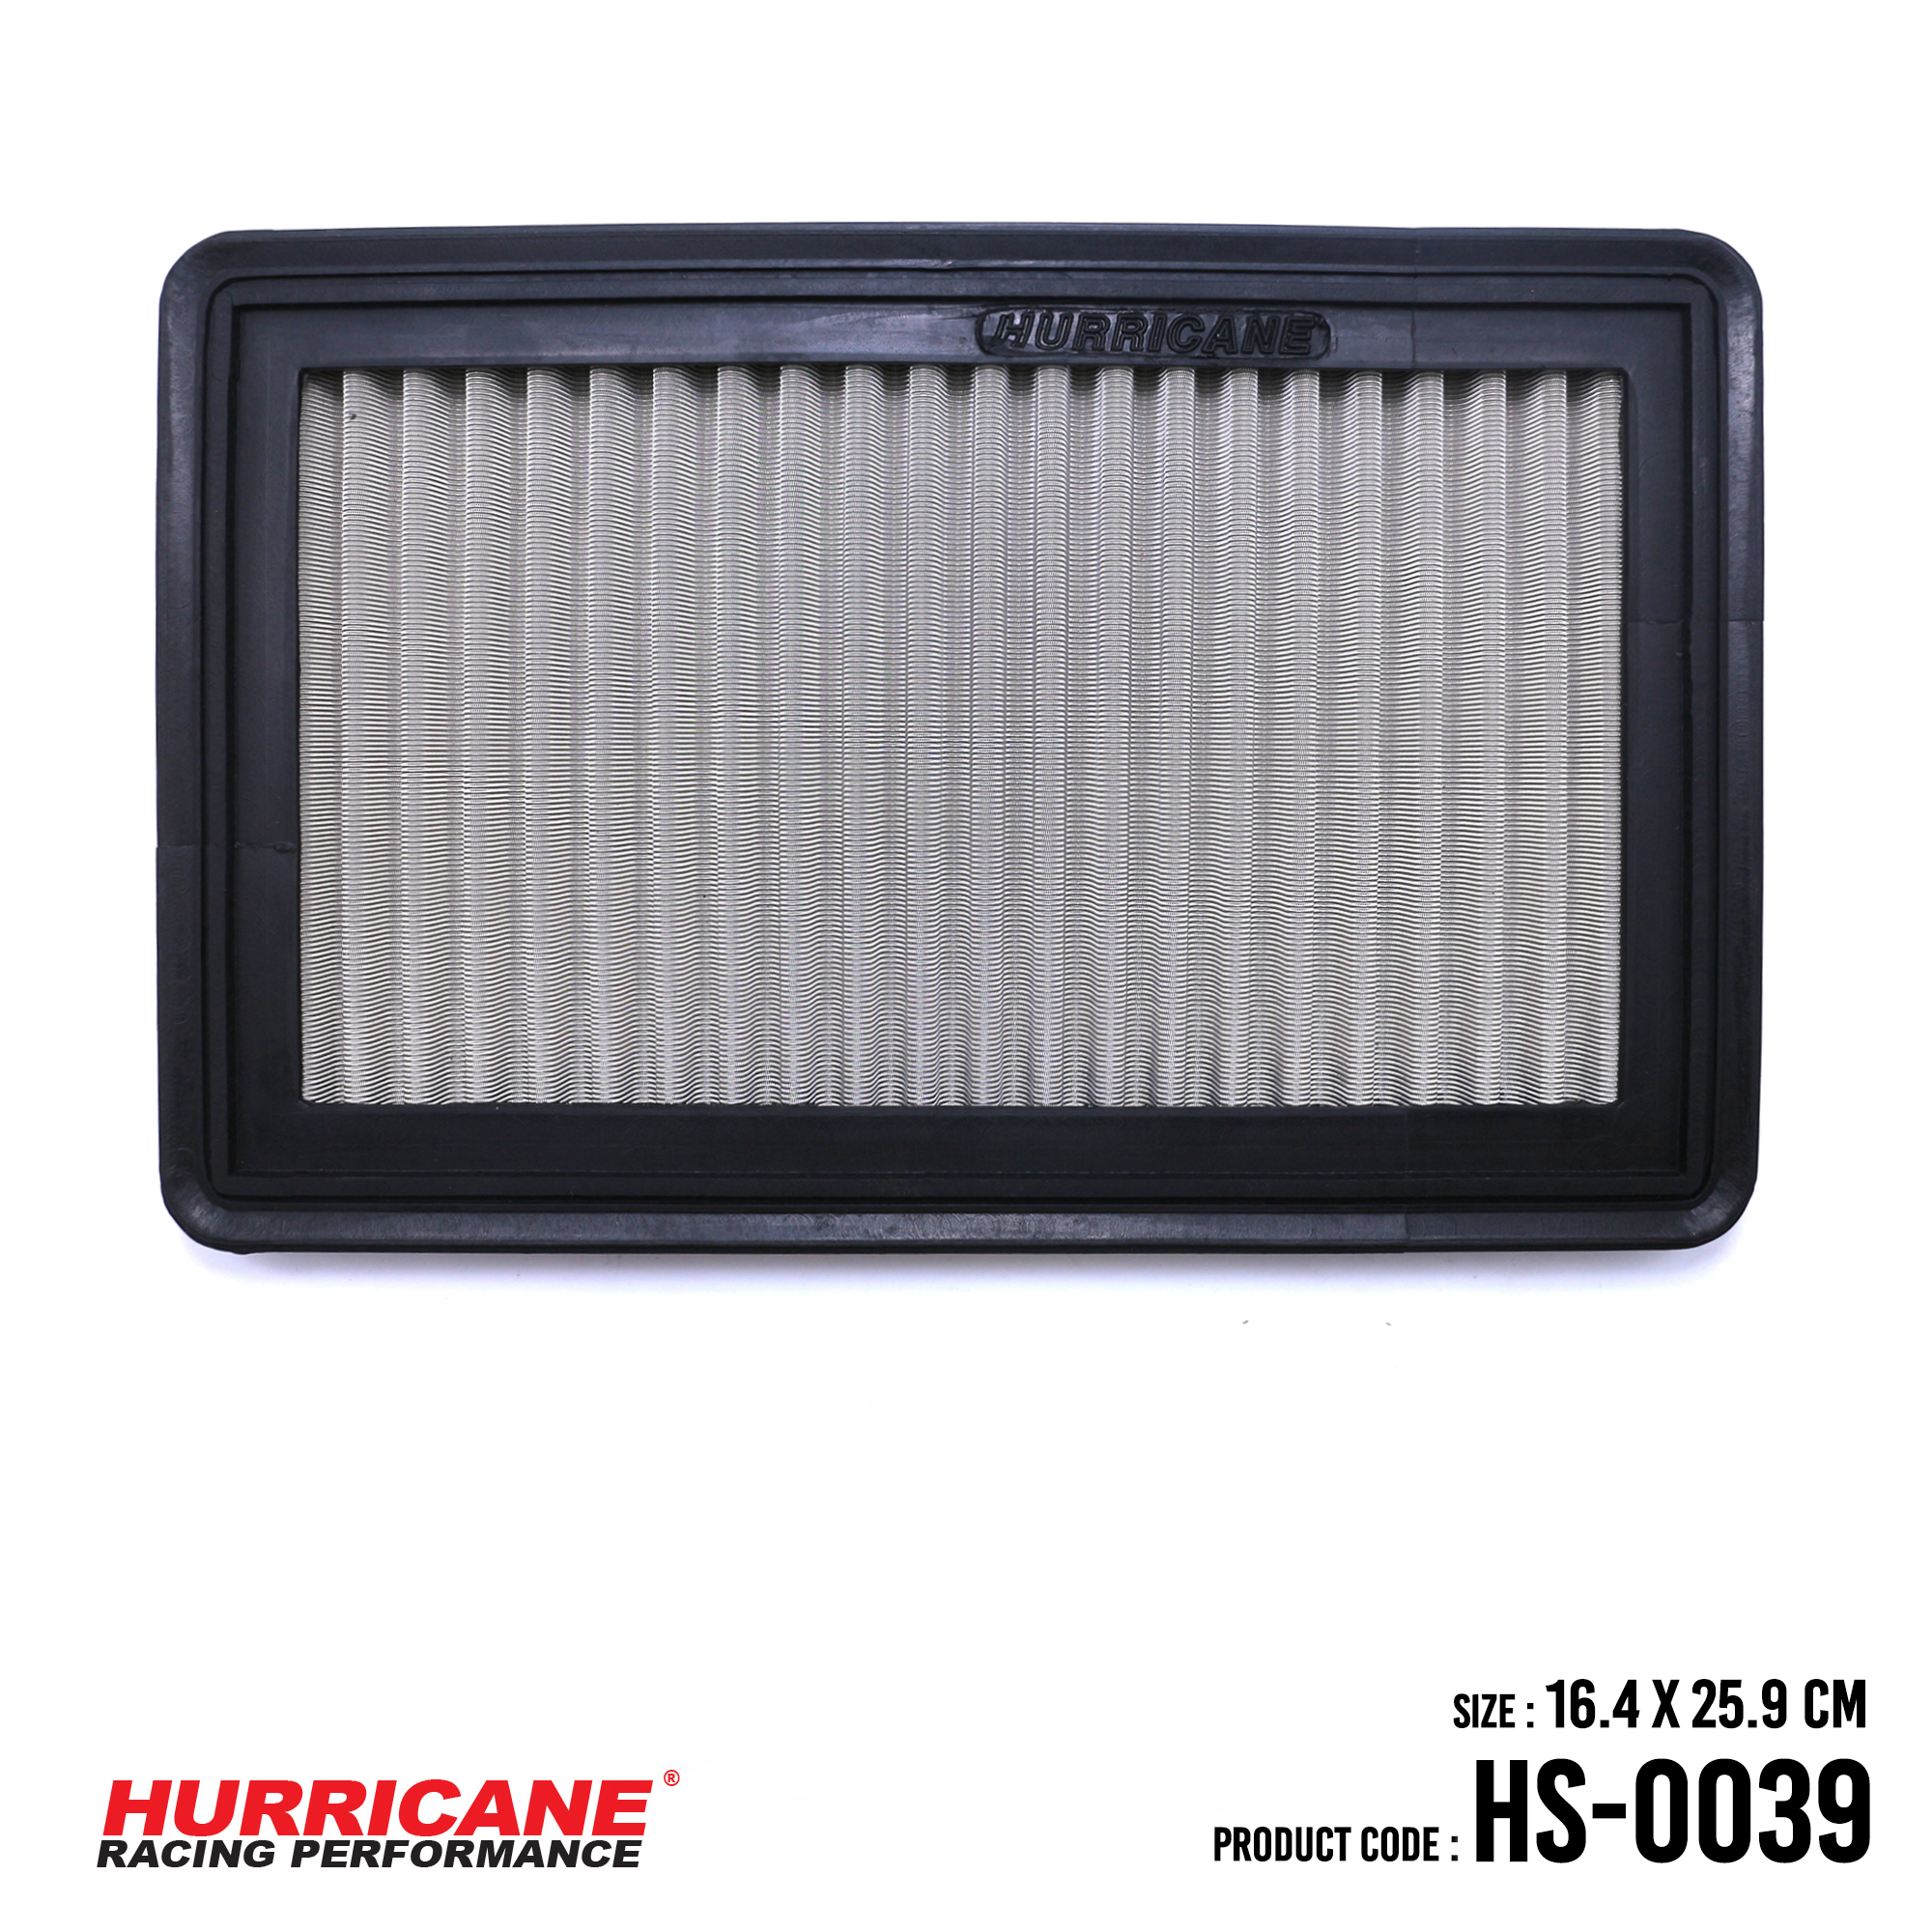 HURRICANE STAINLESS STEEL AIR FILTER FOR HS-0039 FordMazda